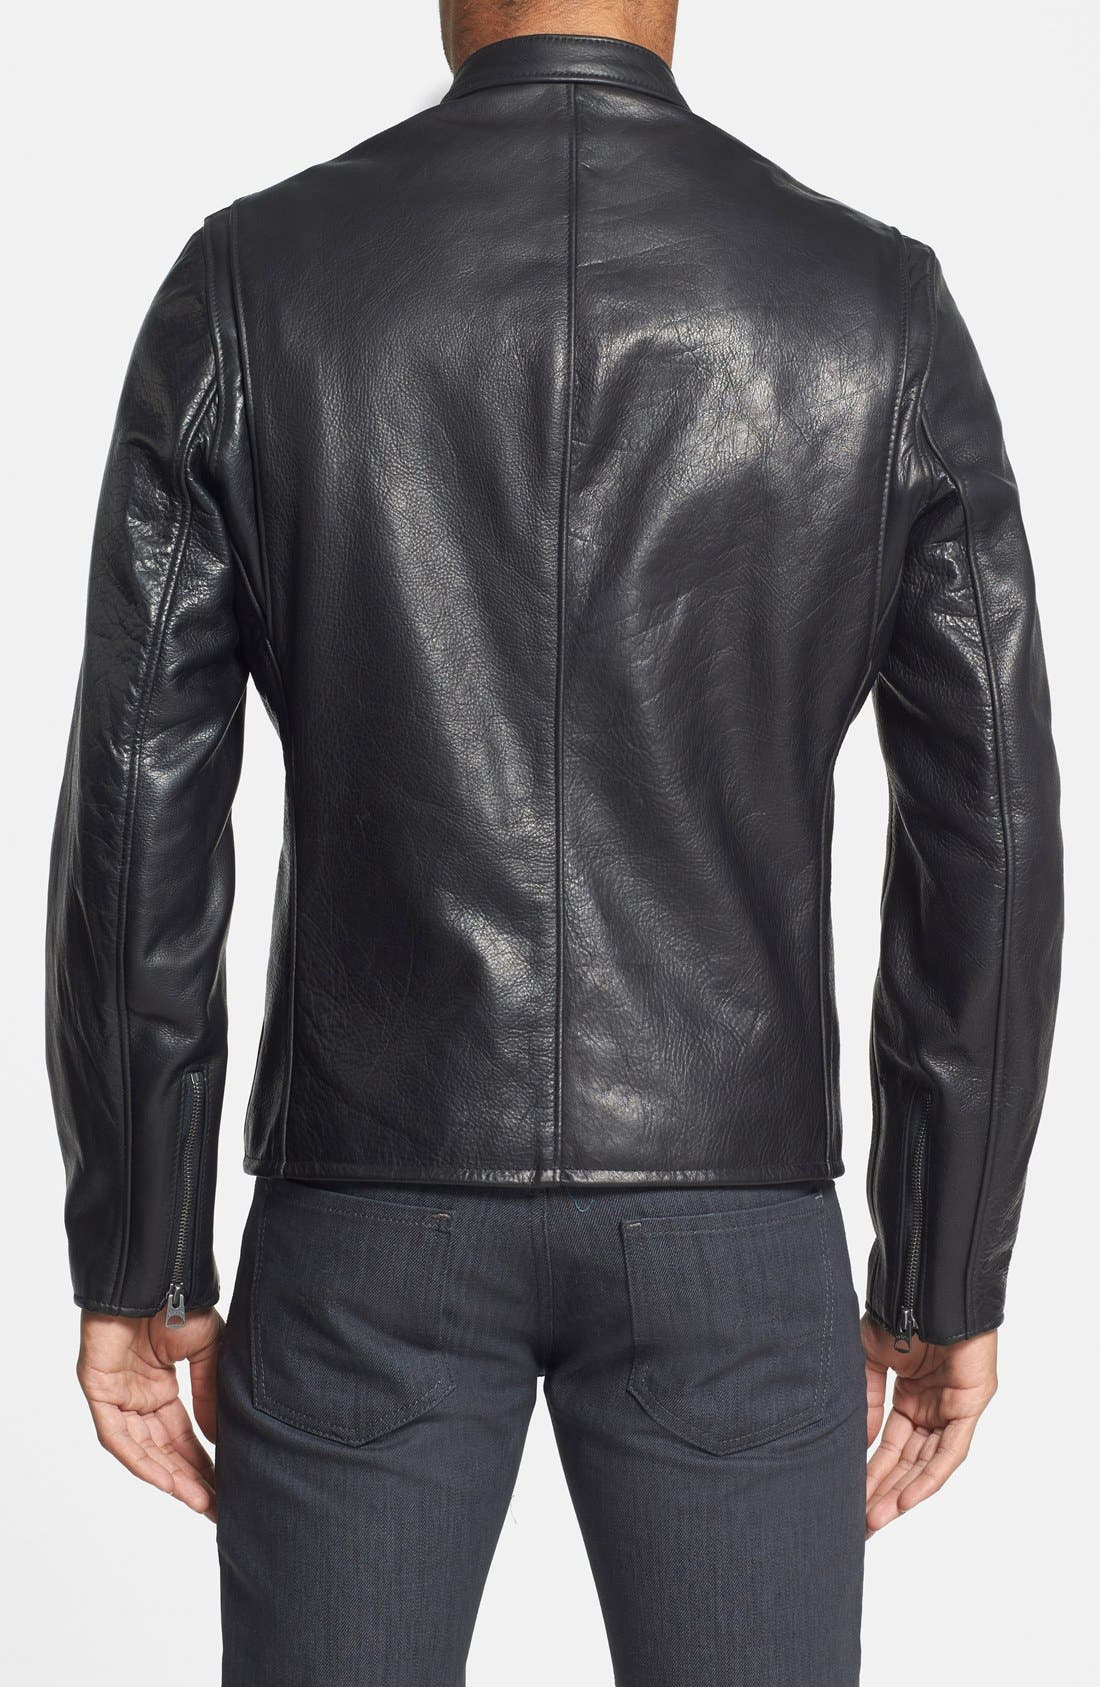 SCHOTT NYC, Café Racer Oil Tanned Cowhide Leather Moto Jacket, Alternate thumbnail 3, color, BLACK